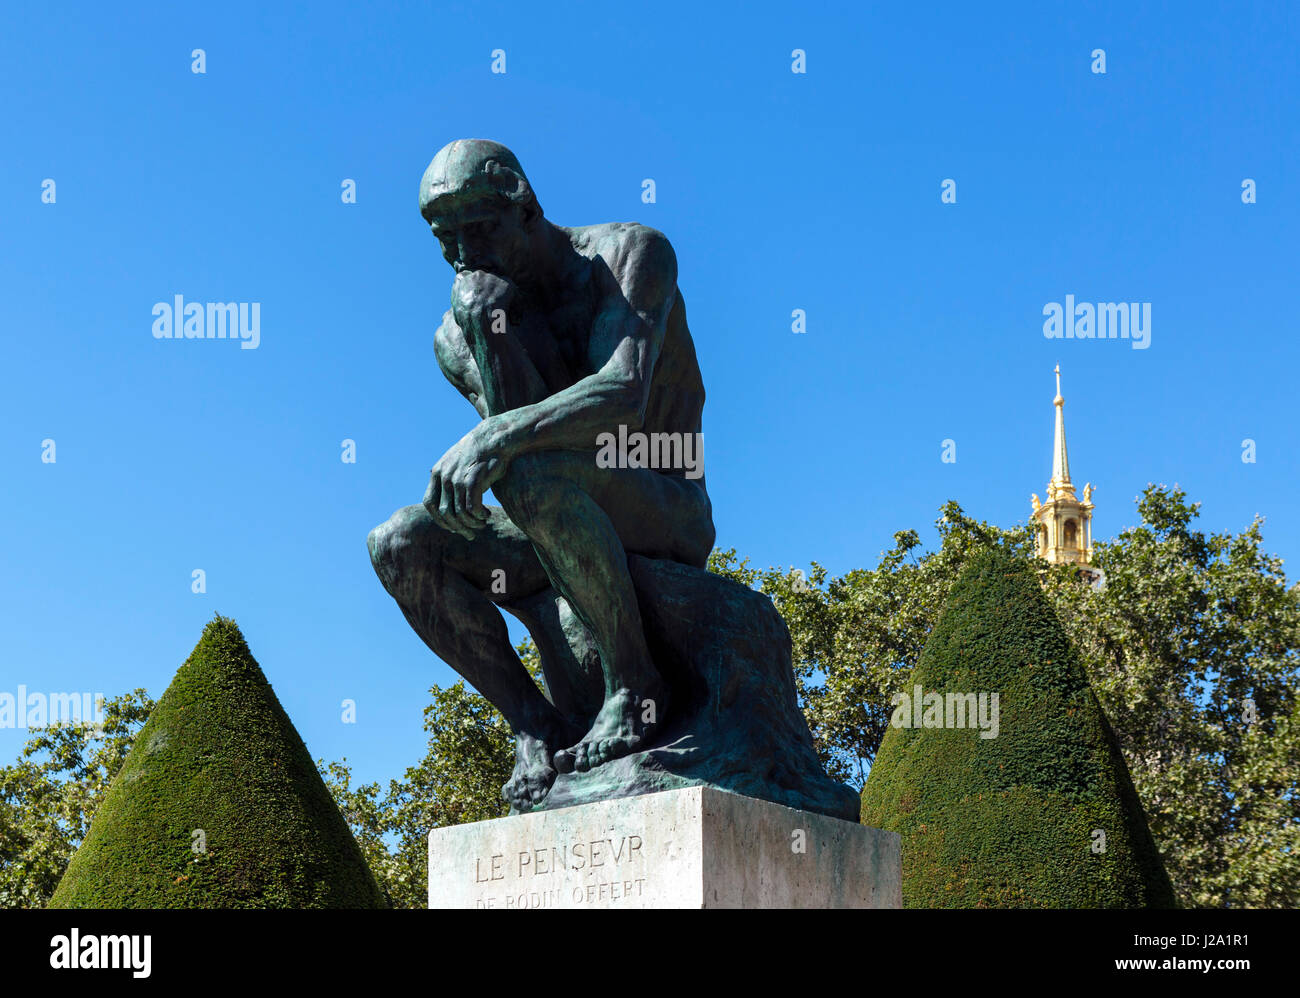 Auguste Rodin's Le Penseur (The Thinker) at The Musee Rodin, Paris, France - Stock Image